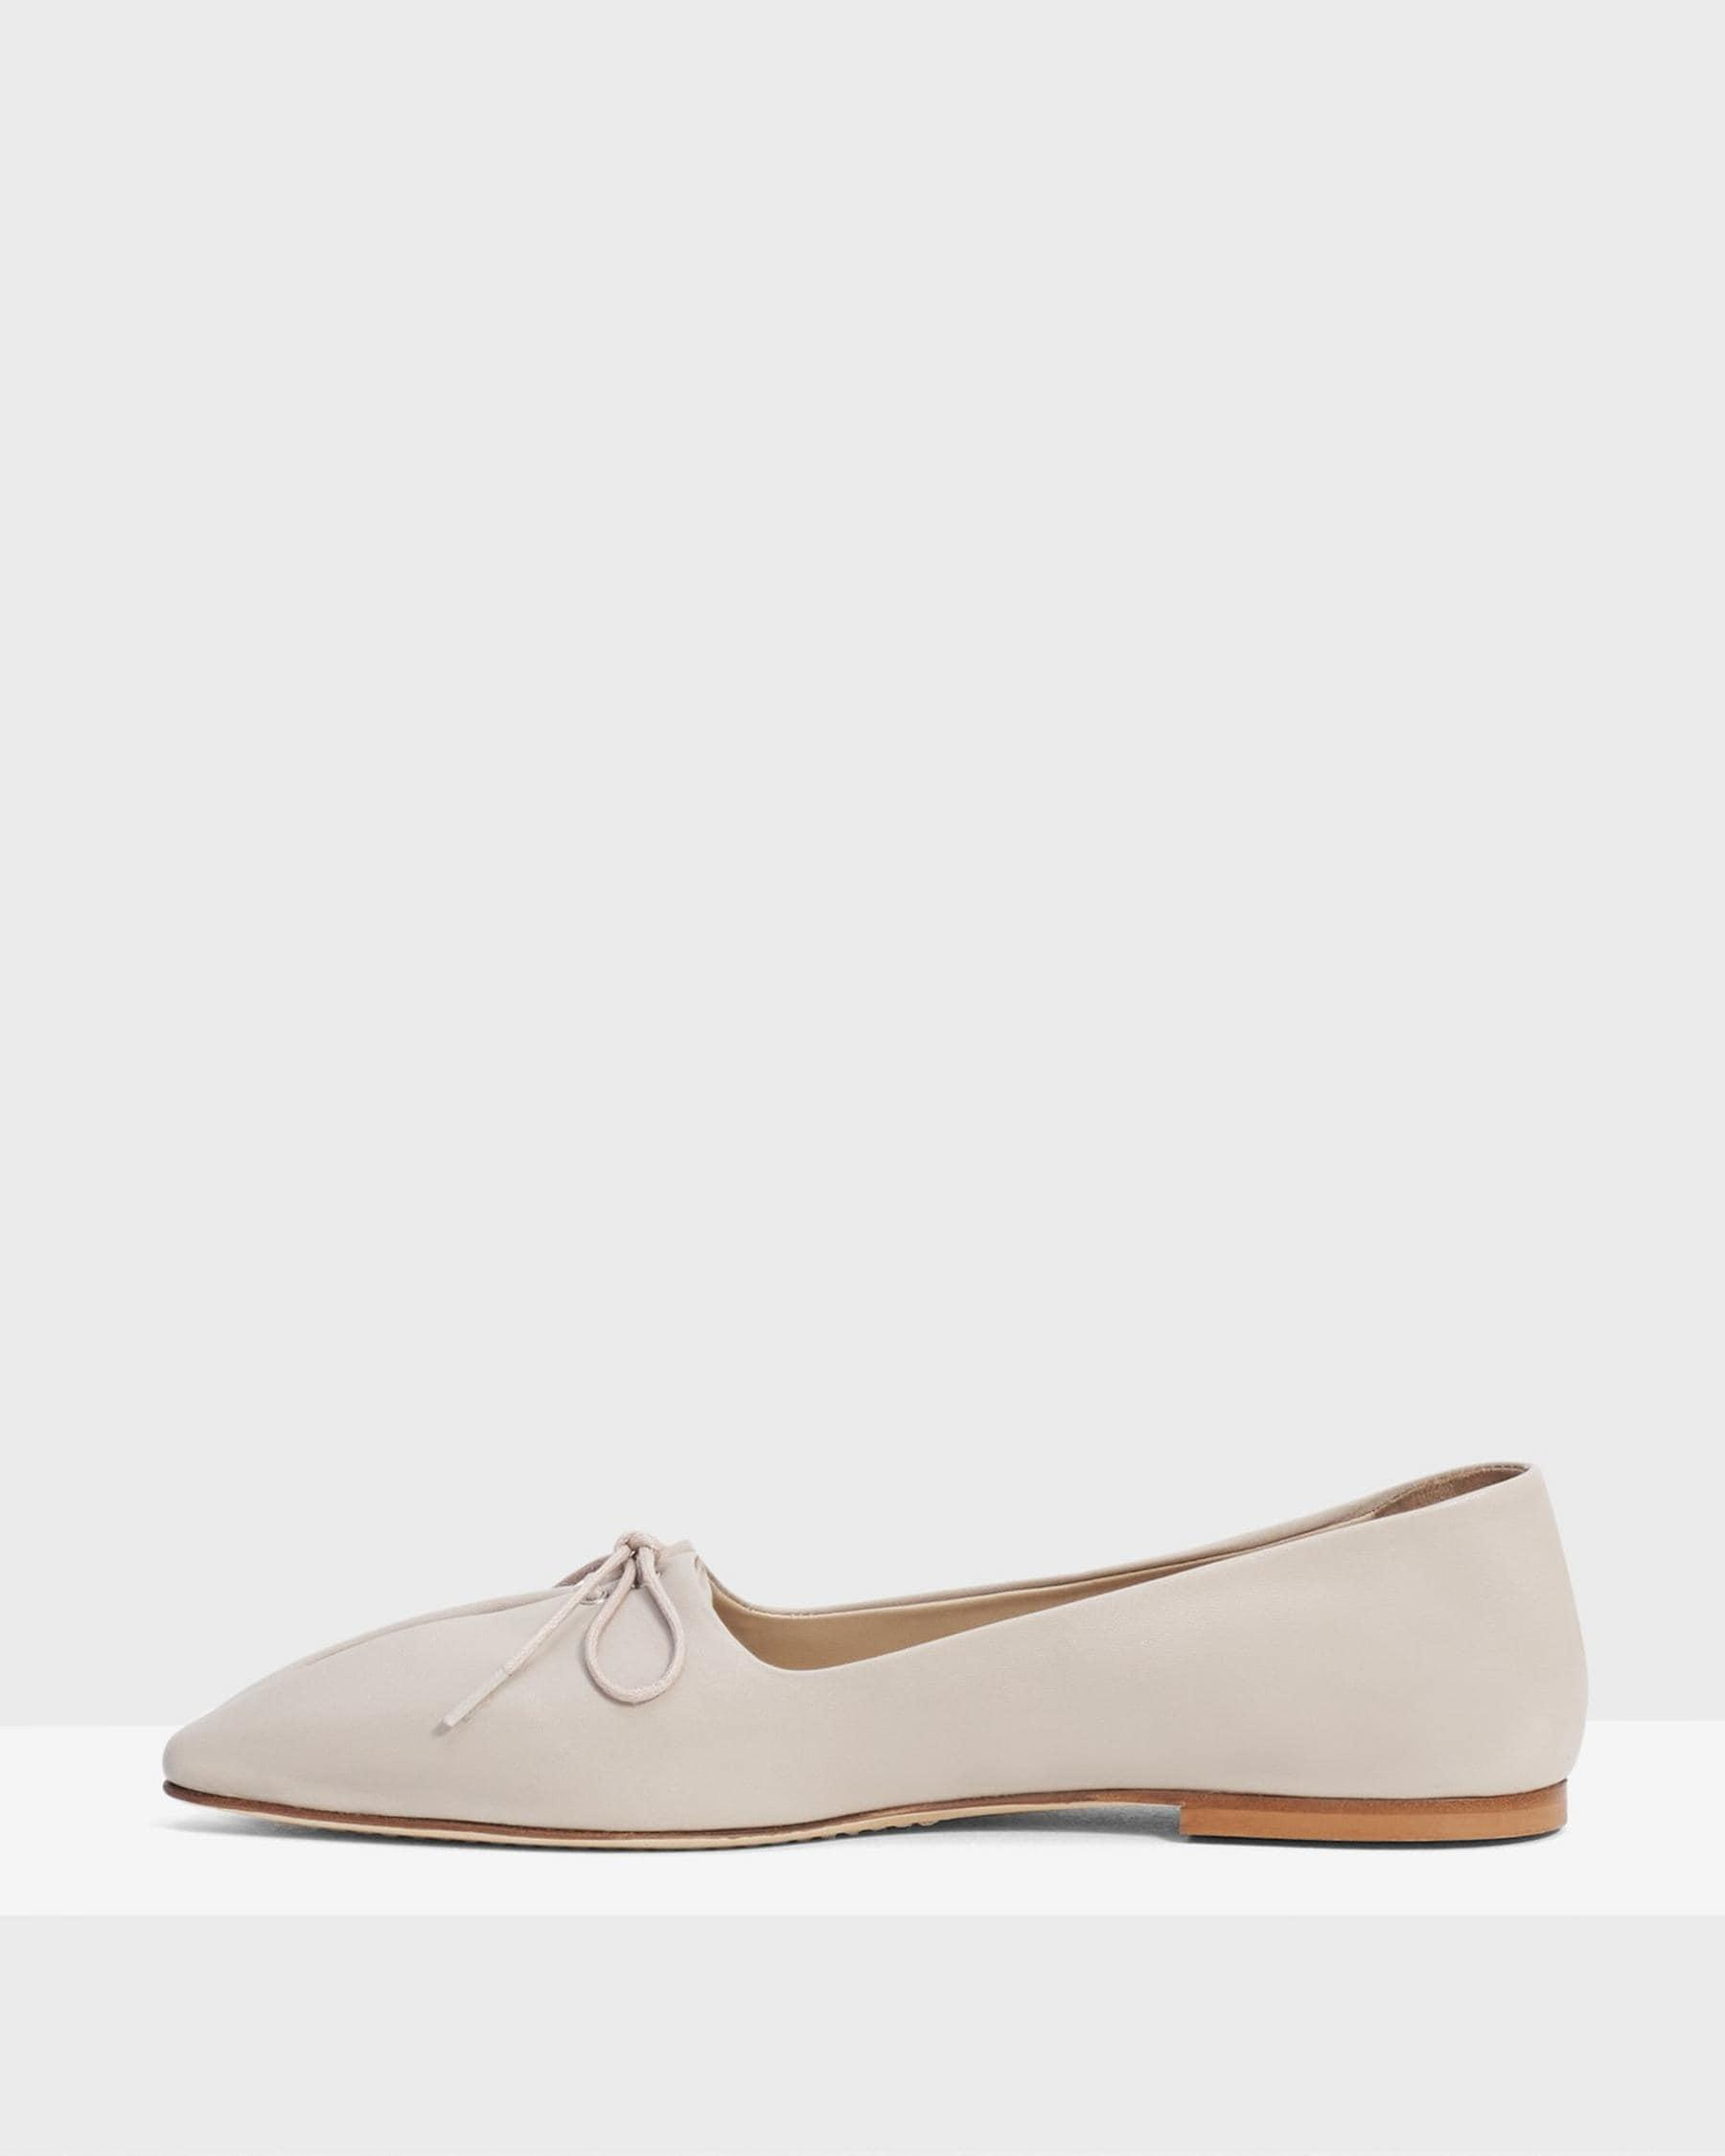 Pleated Ballet Flat in Leather 2